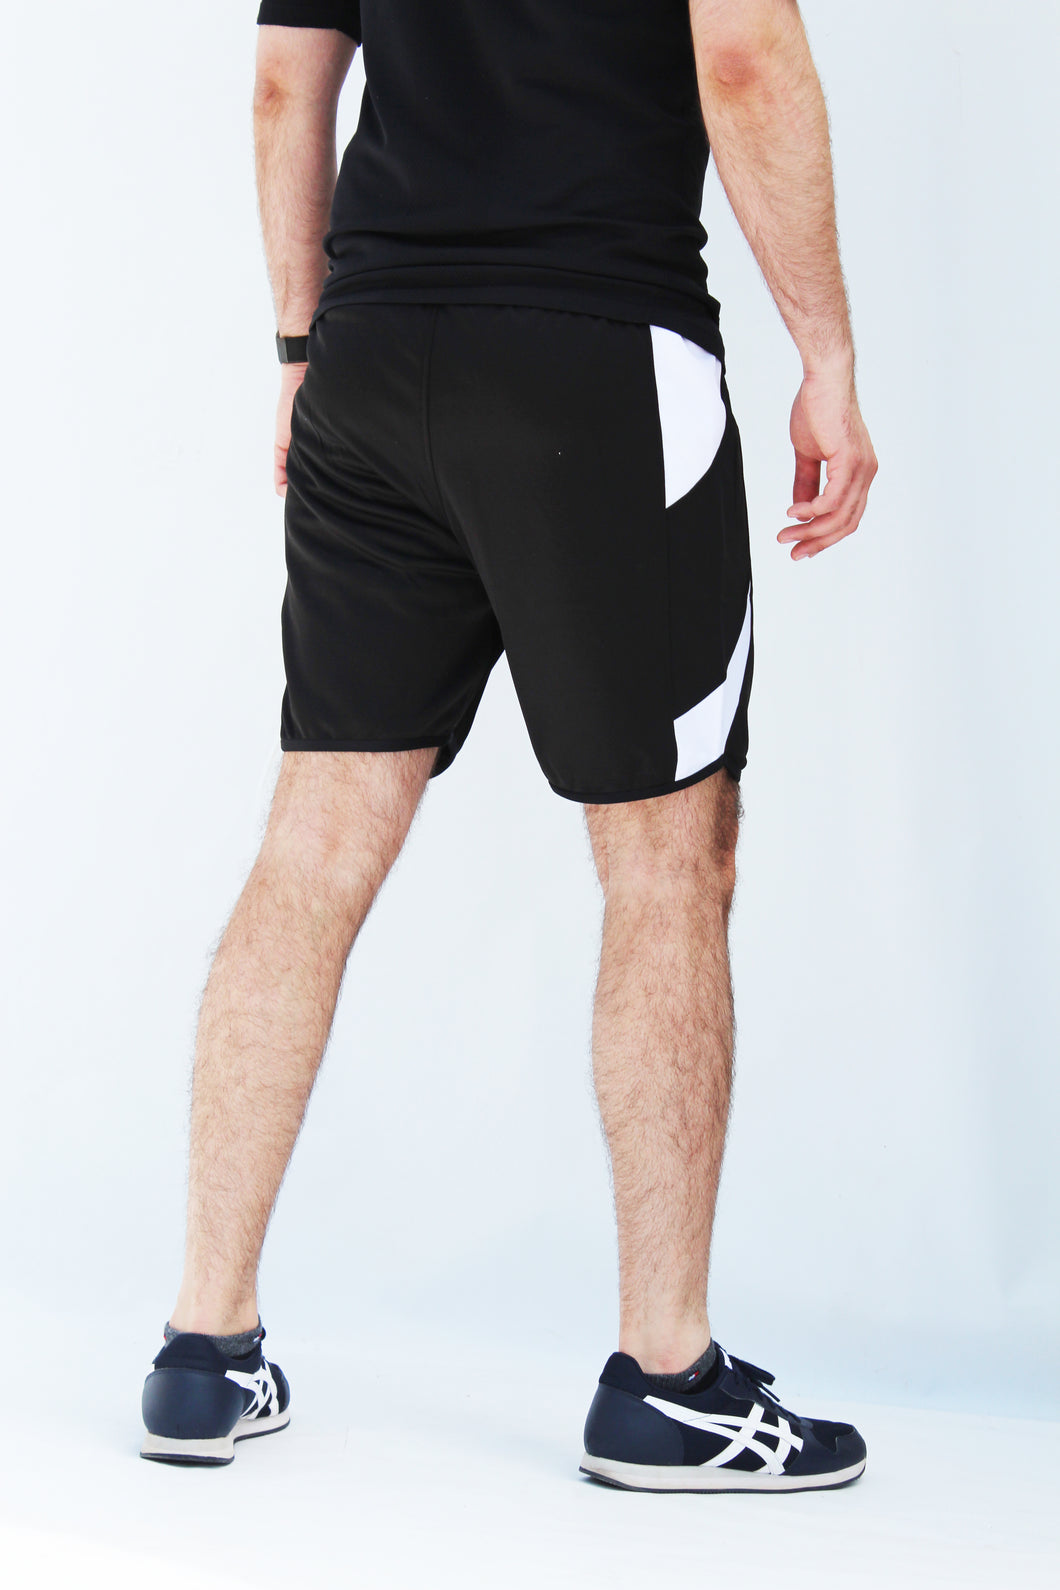 Men's black shorts